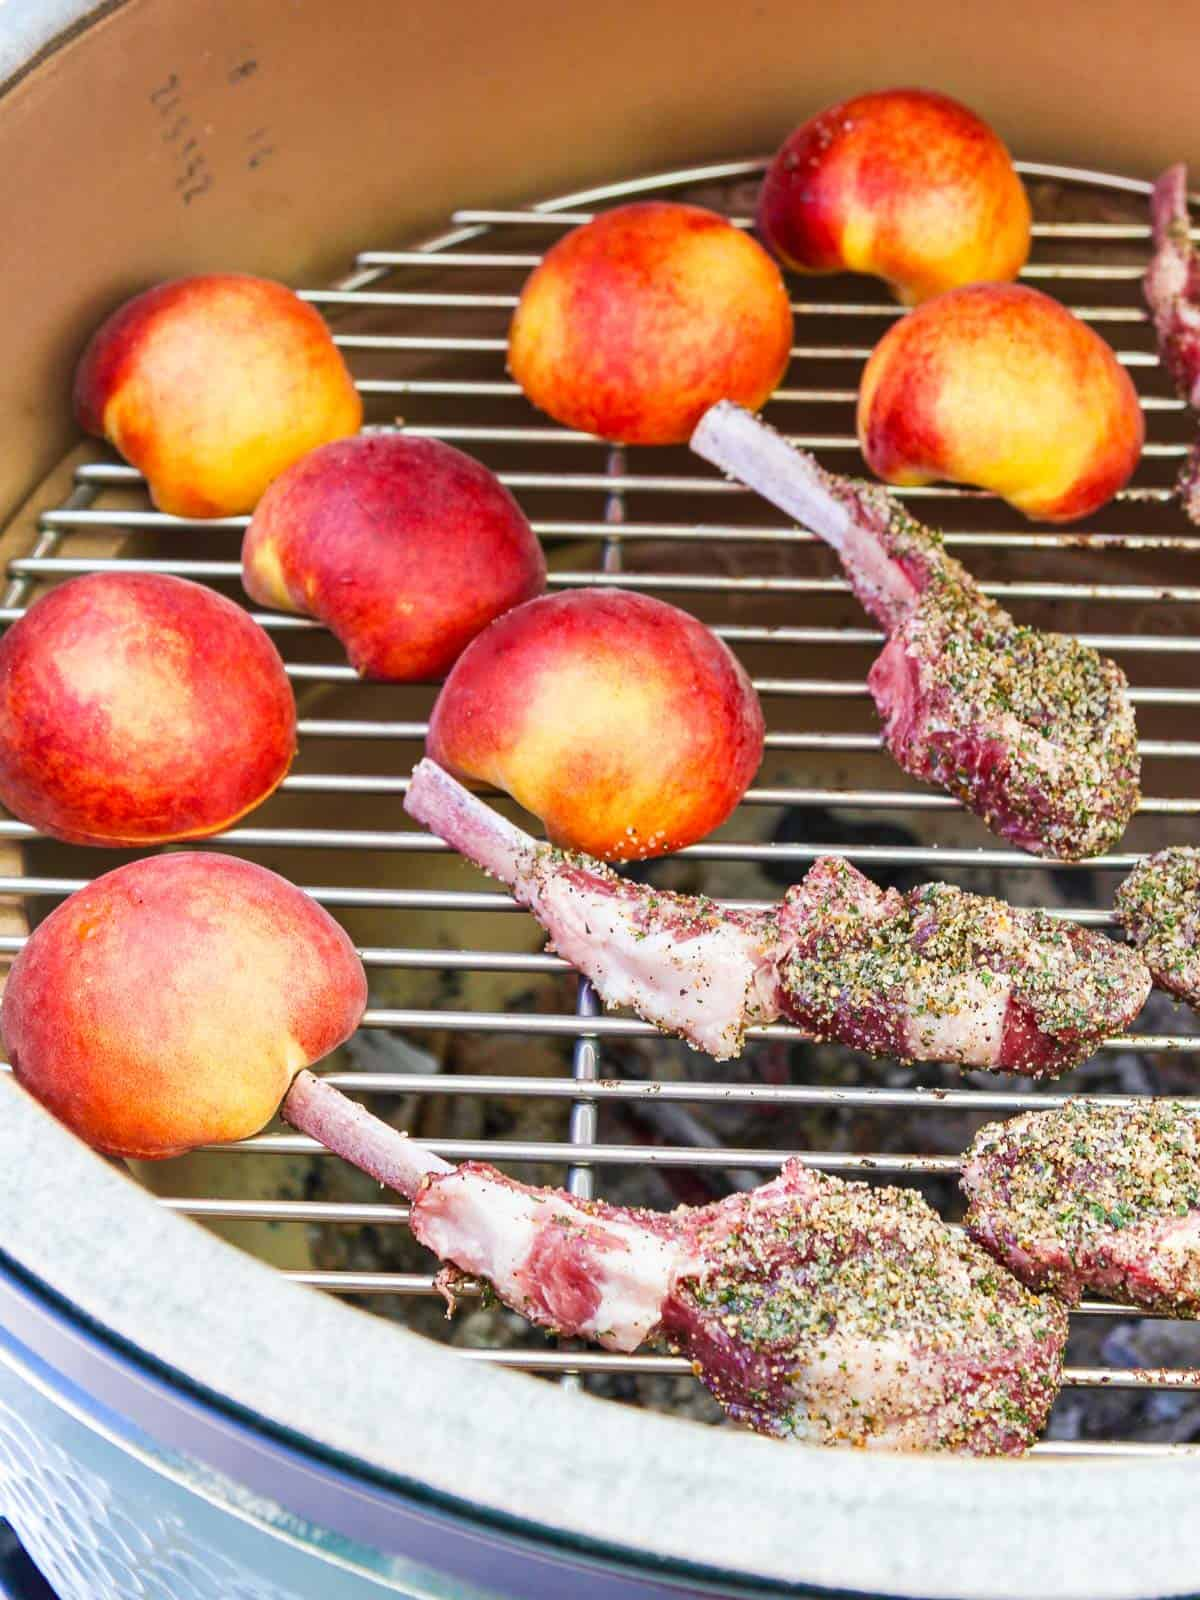 A charcoal grill with lamb chops and peaches grilling over hot coals.